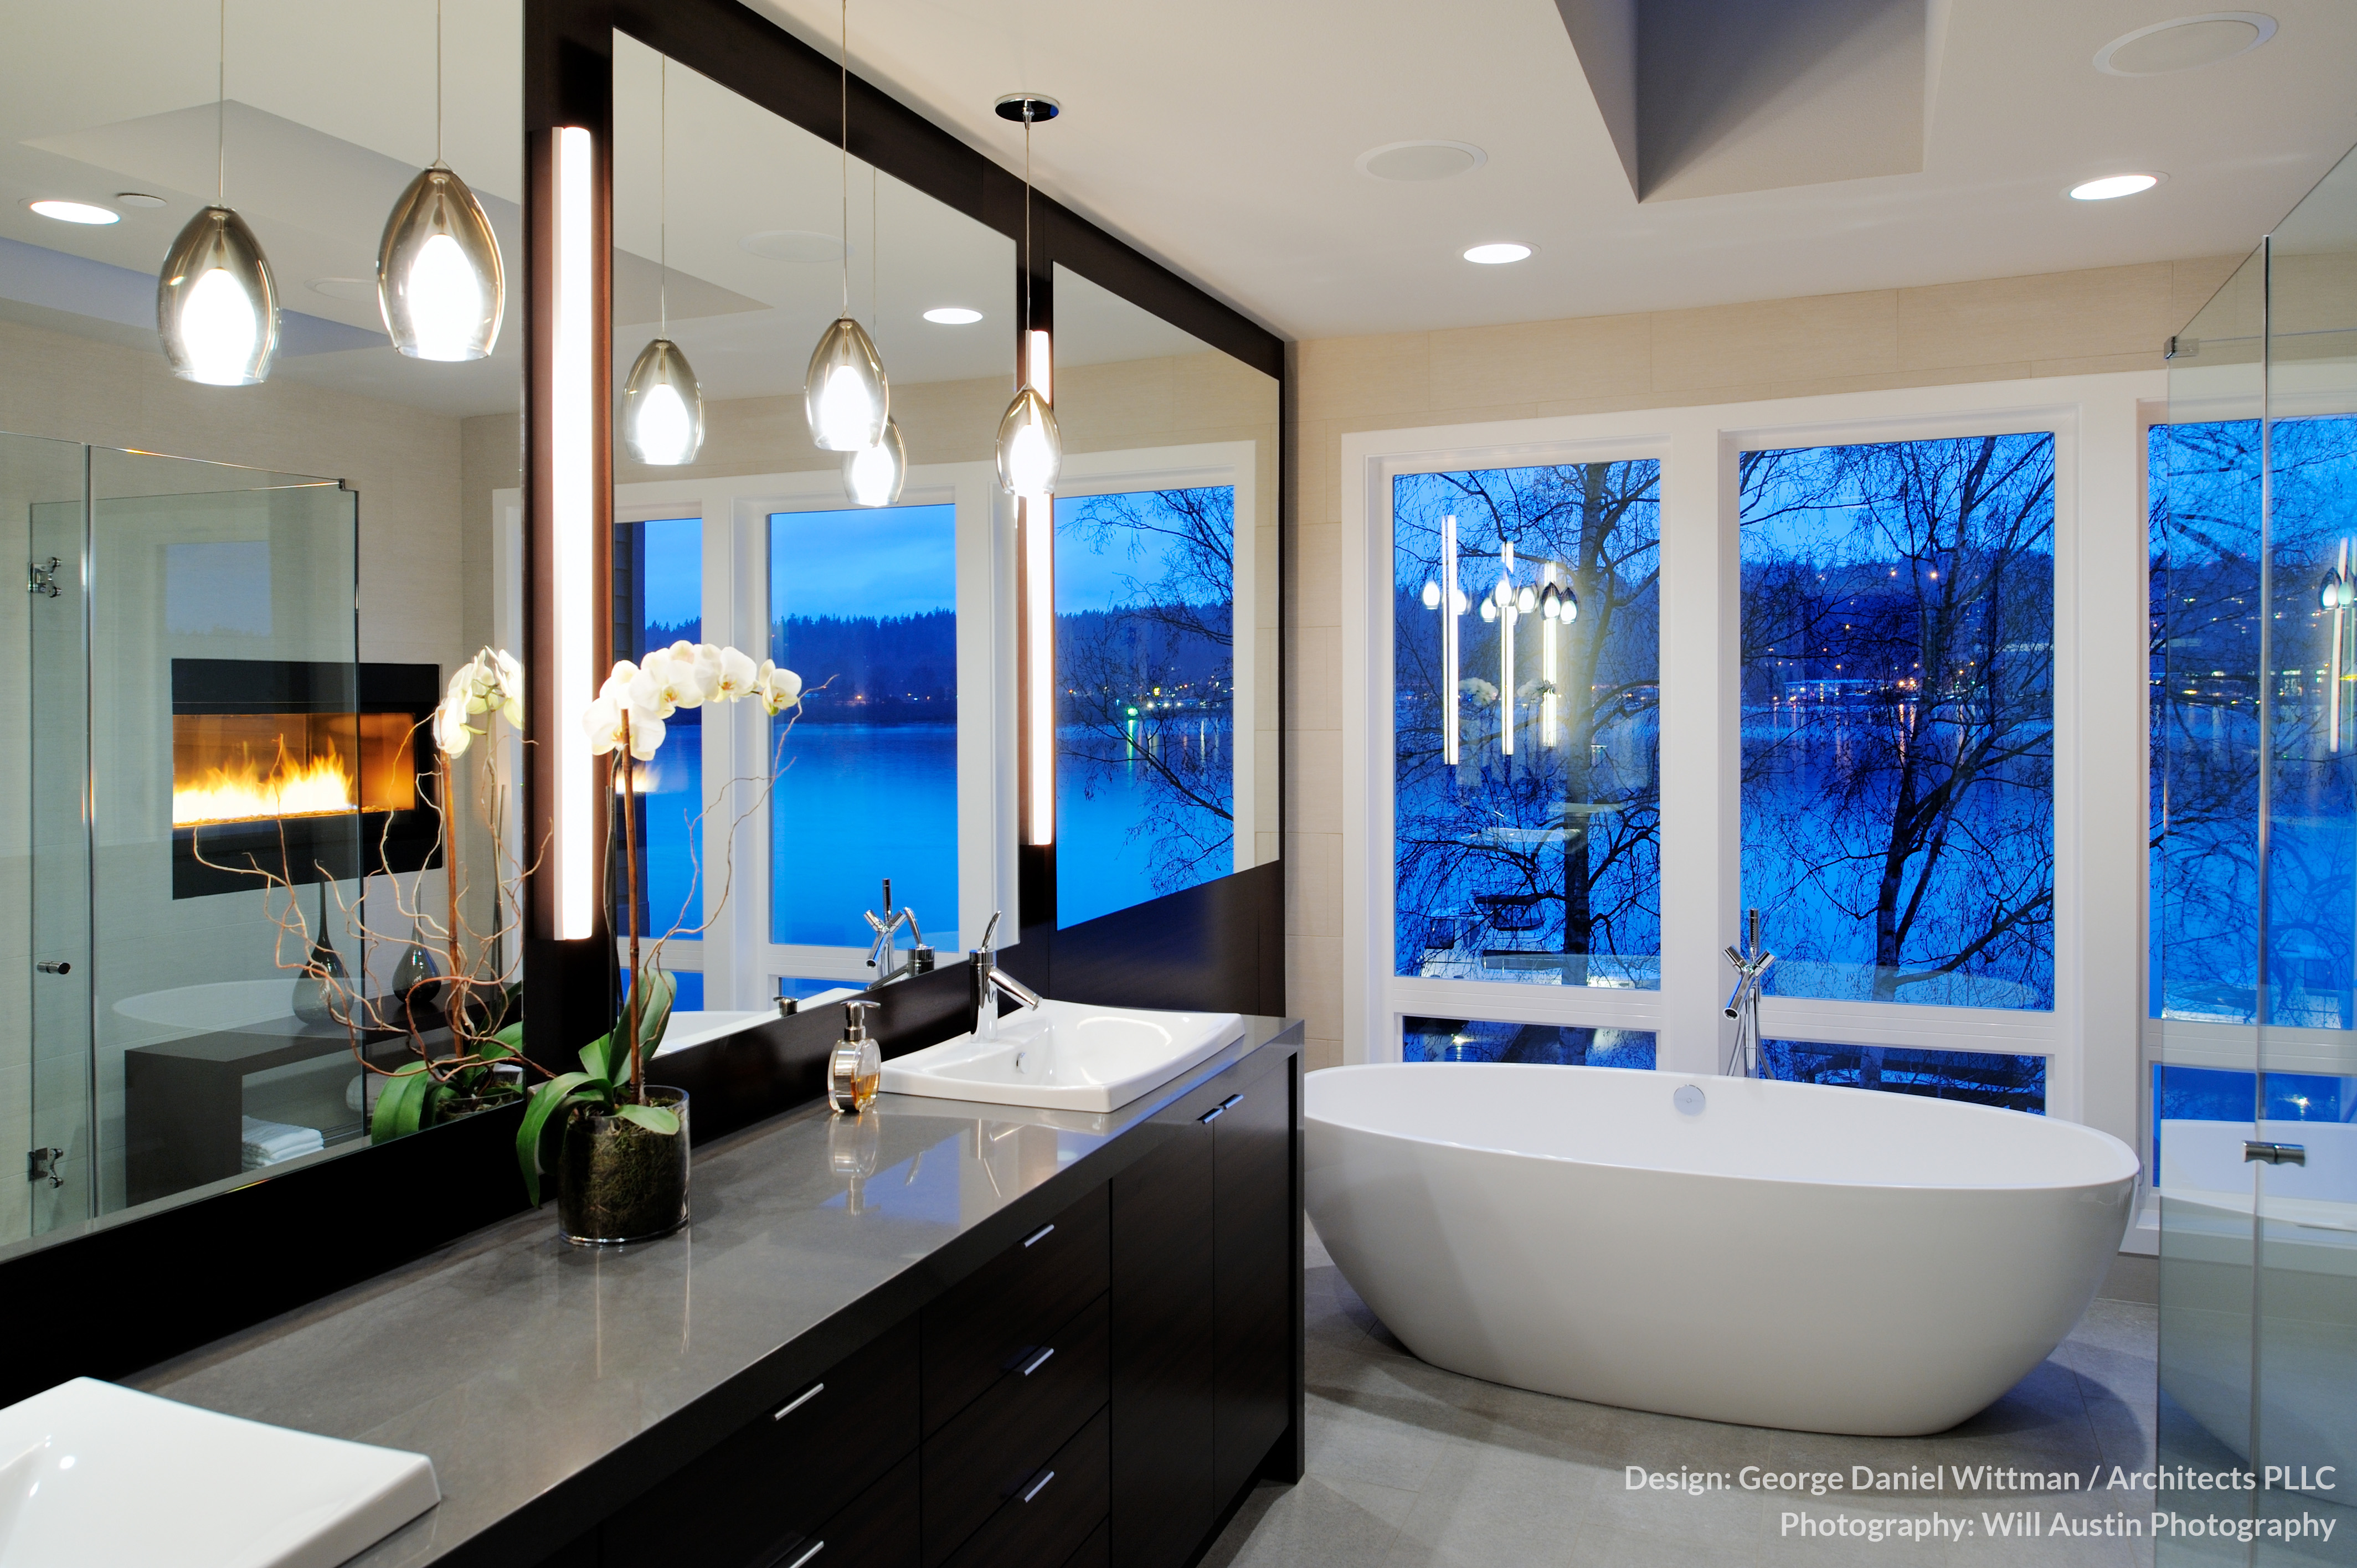 The master bath houses a large pedestal tub with expansive views over the water via full height windows. All-glass shower enclosure can be seen at right.